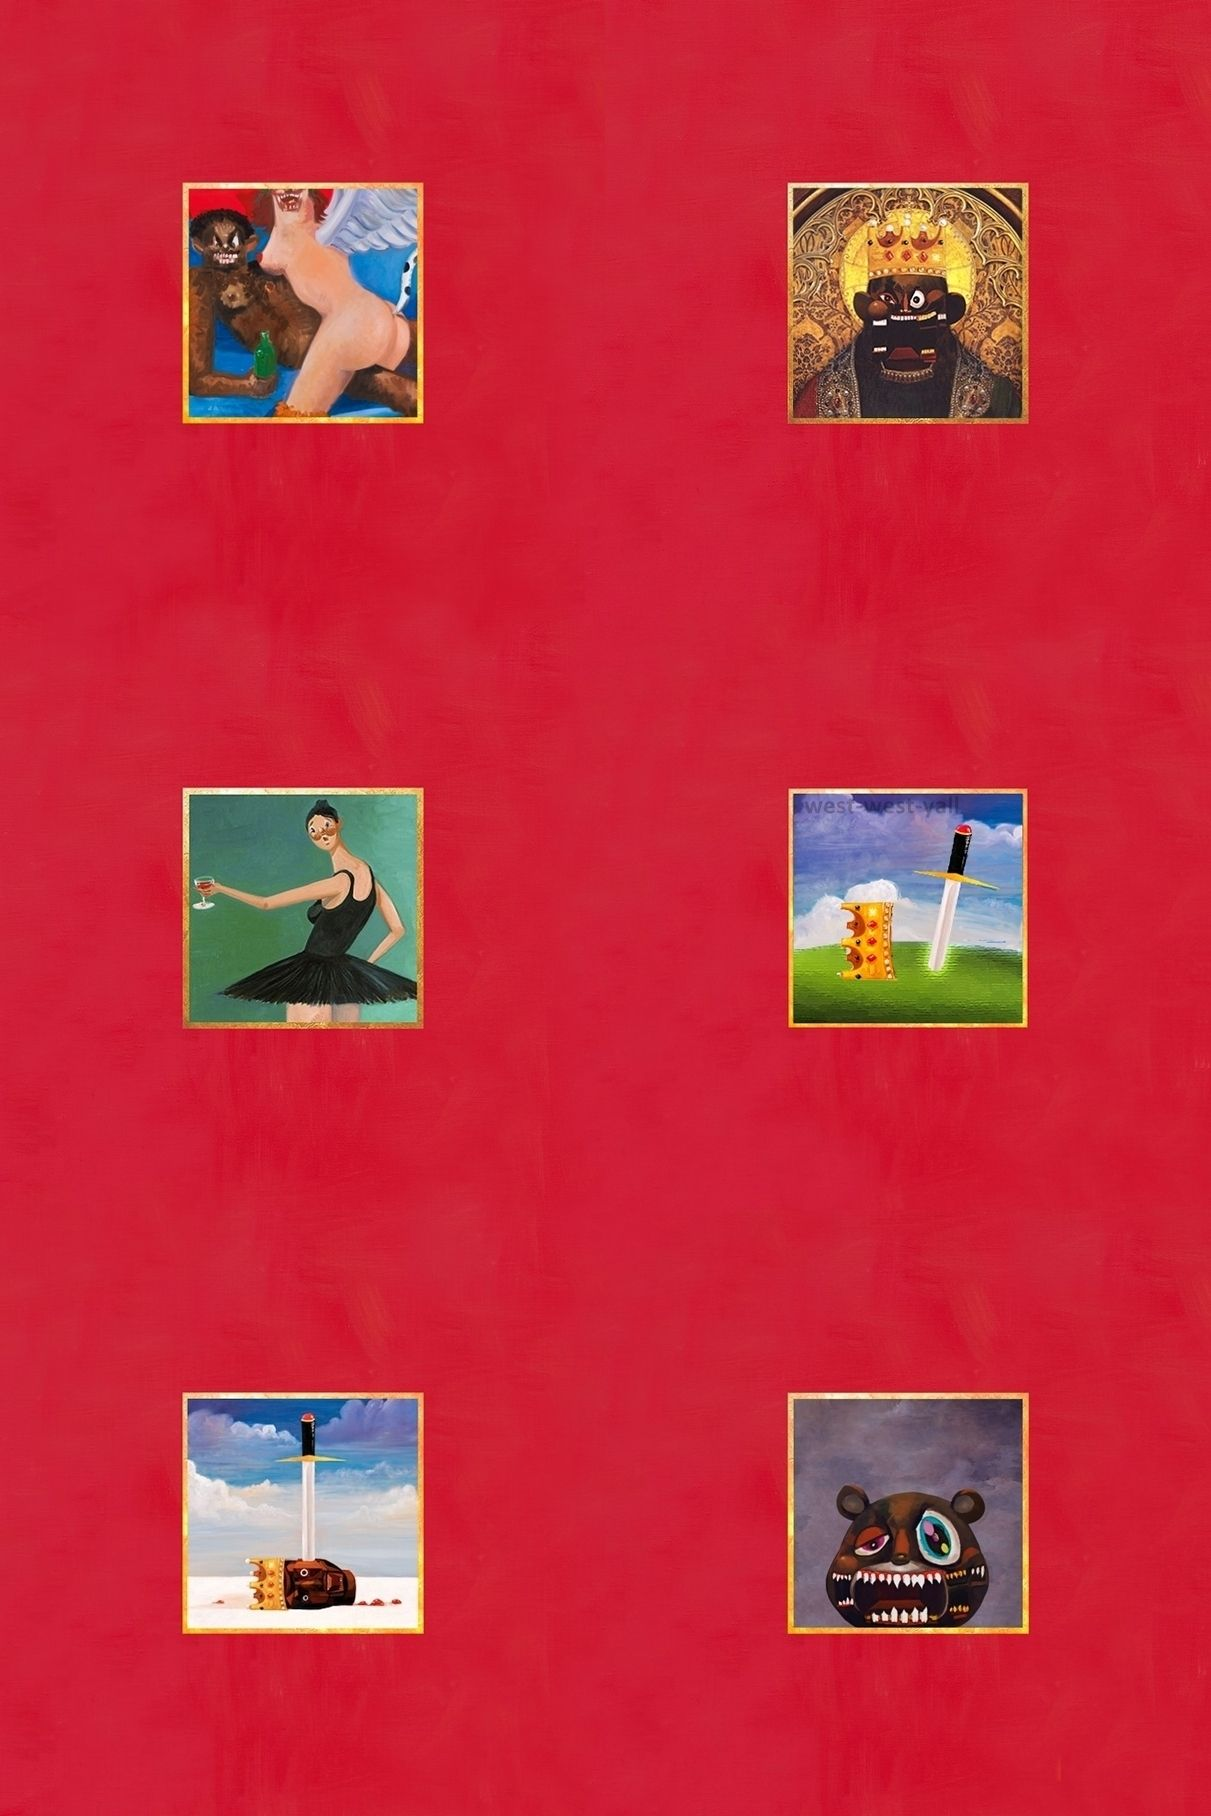 I Will Not Check Your Mixtape Video In 2020 Kanye West Wallpaper Beautiful Dark Twisted Fantasy Rap Wallpaper